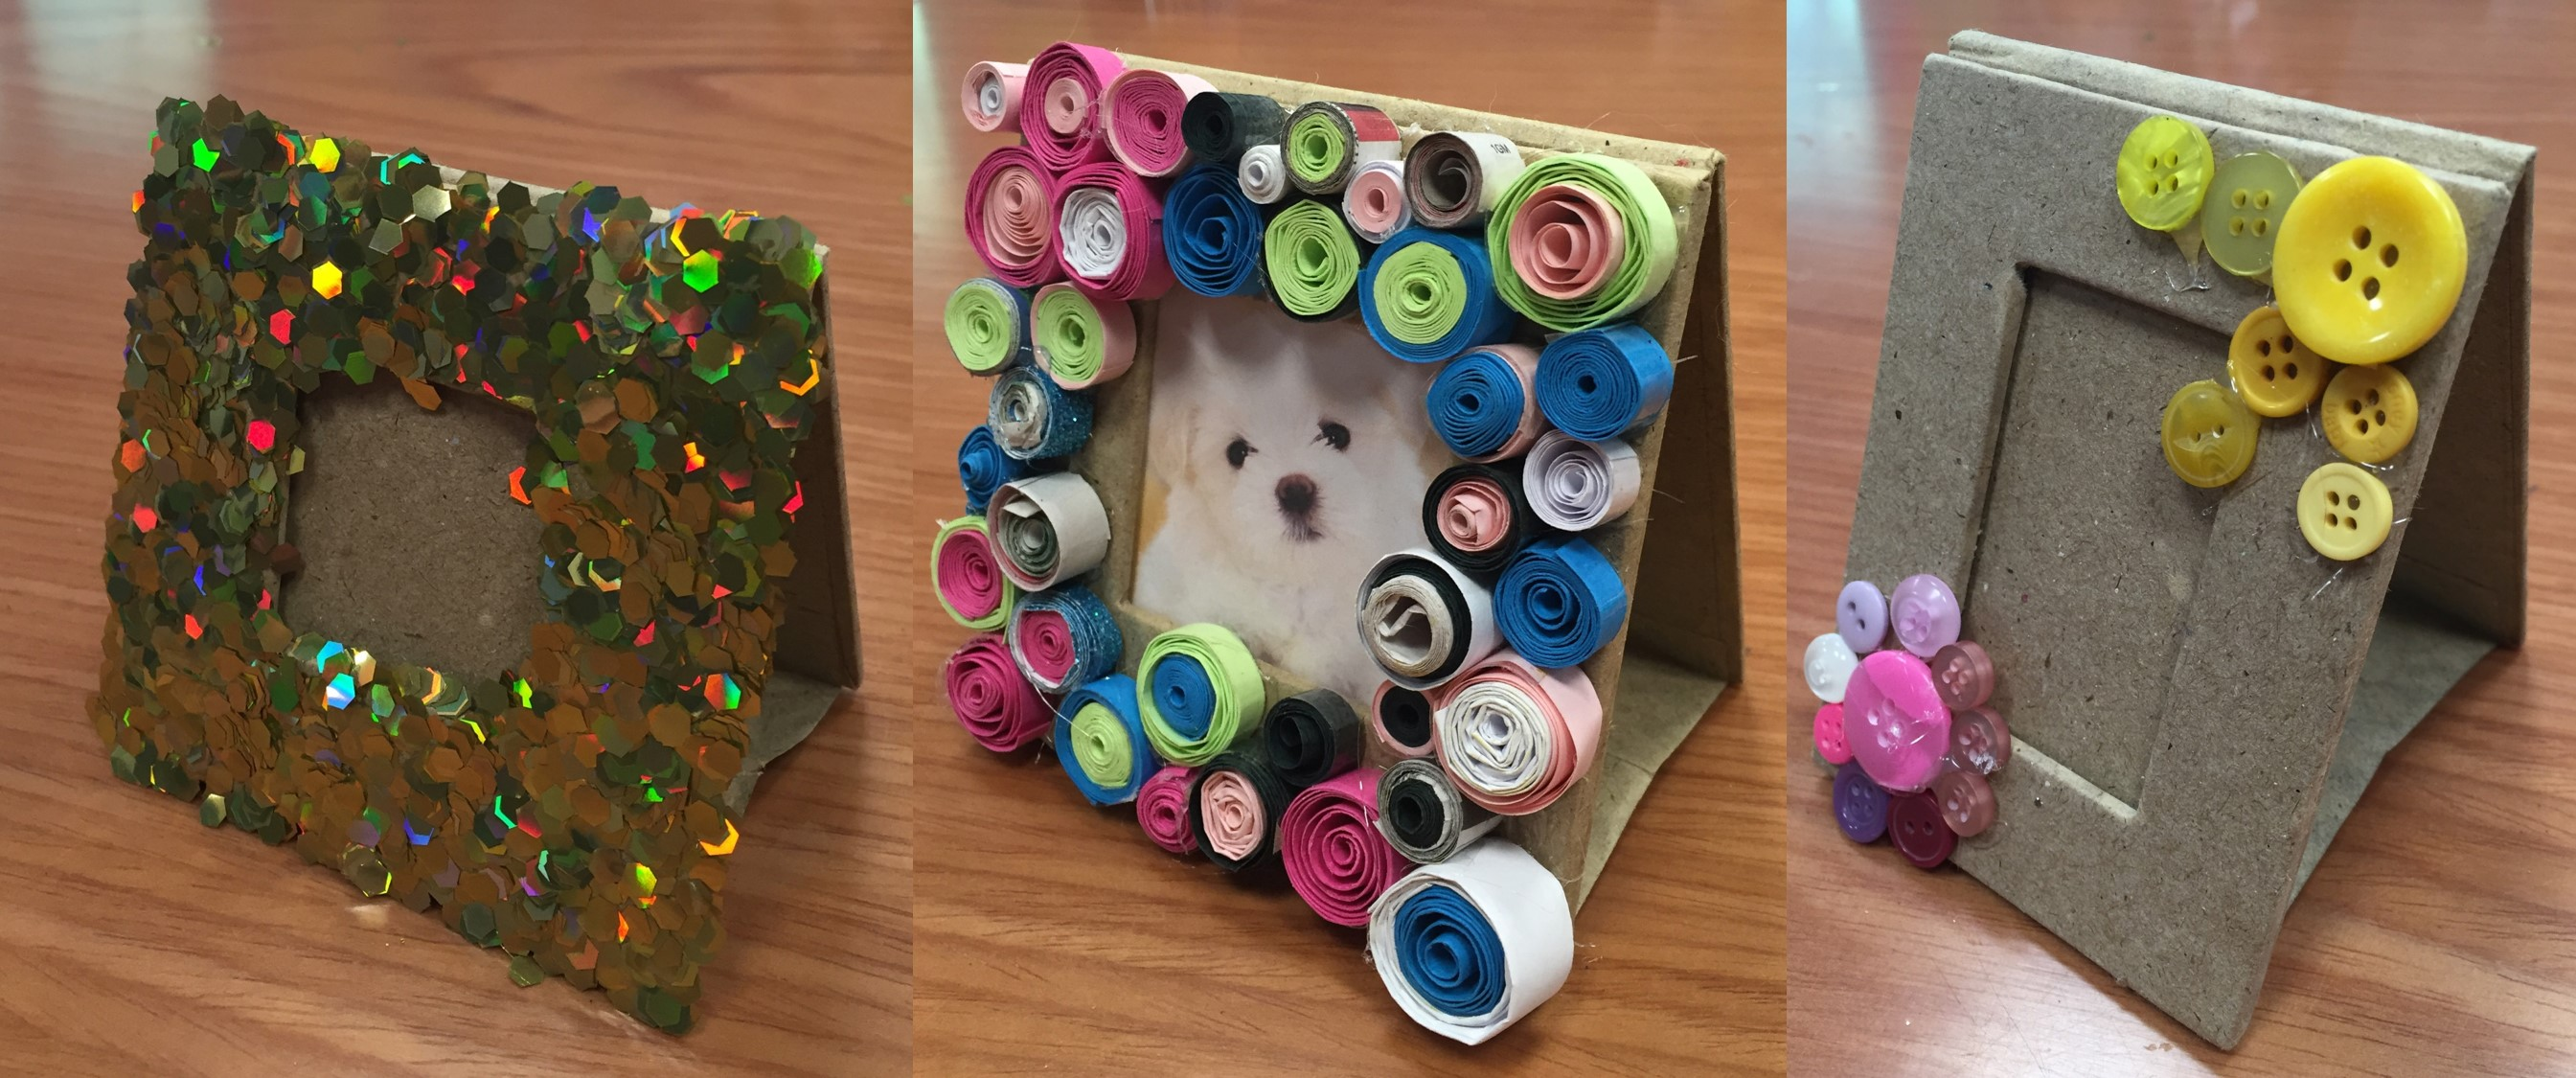 Fathers Day Crafts Amp Ideas Bright Ideas Crafts